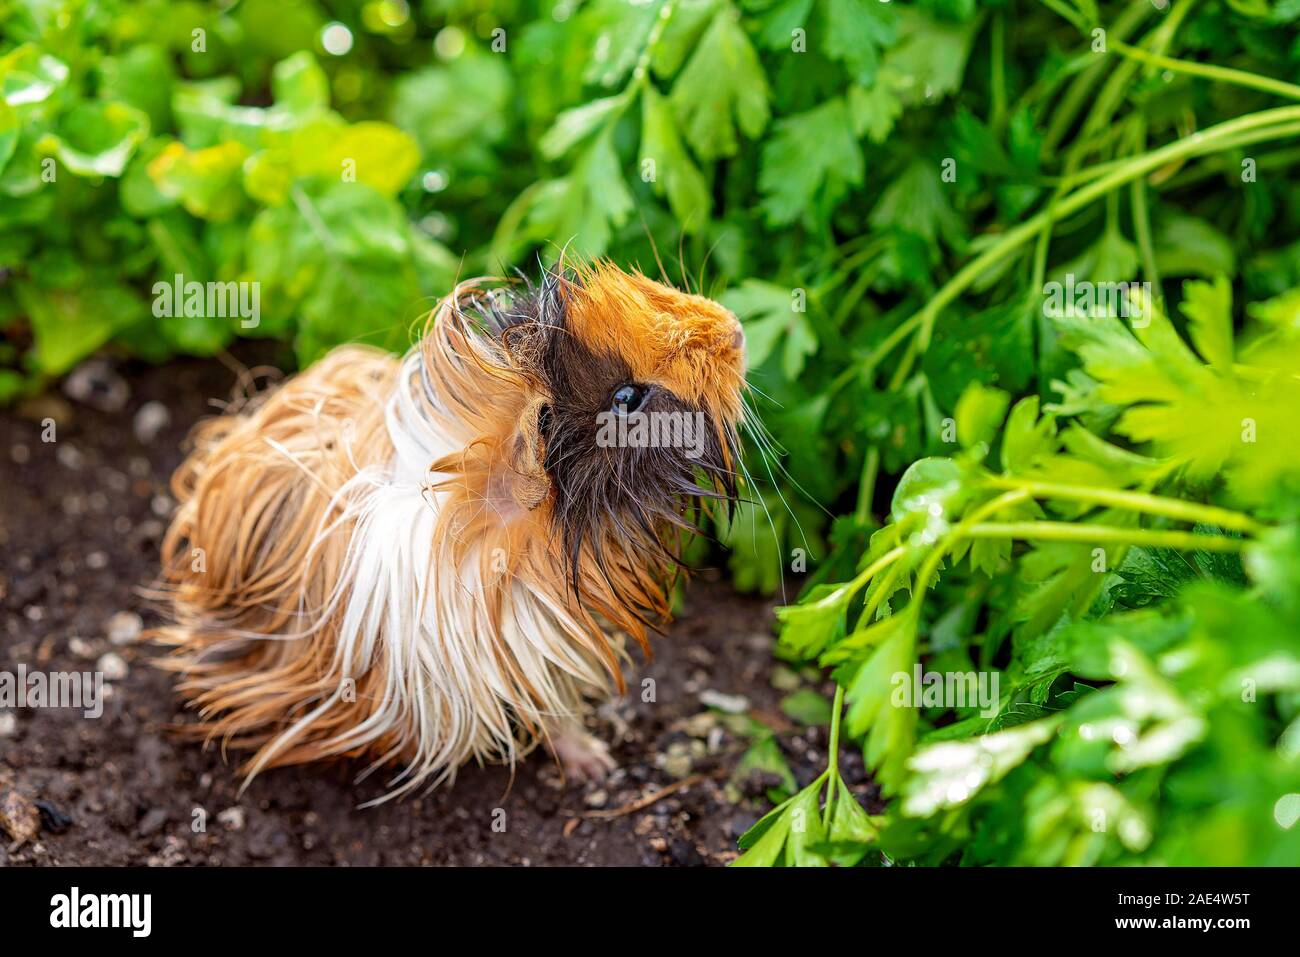 Picture of: A Cute Guinea Pig Also Know As A Cavy Exploring A Garden Bed Of Parsley While His Fur Becomes Wet With Morning Dew Stock Photo Alamy